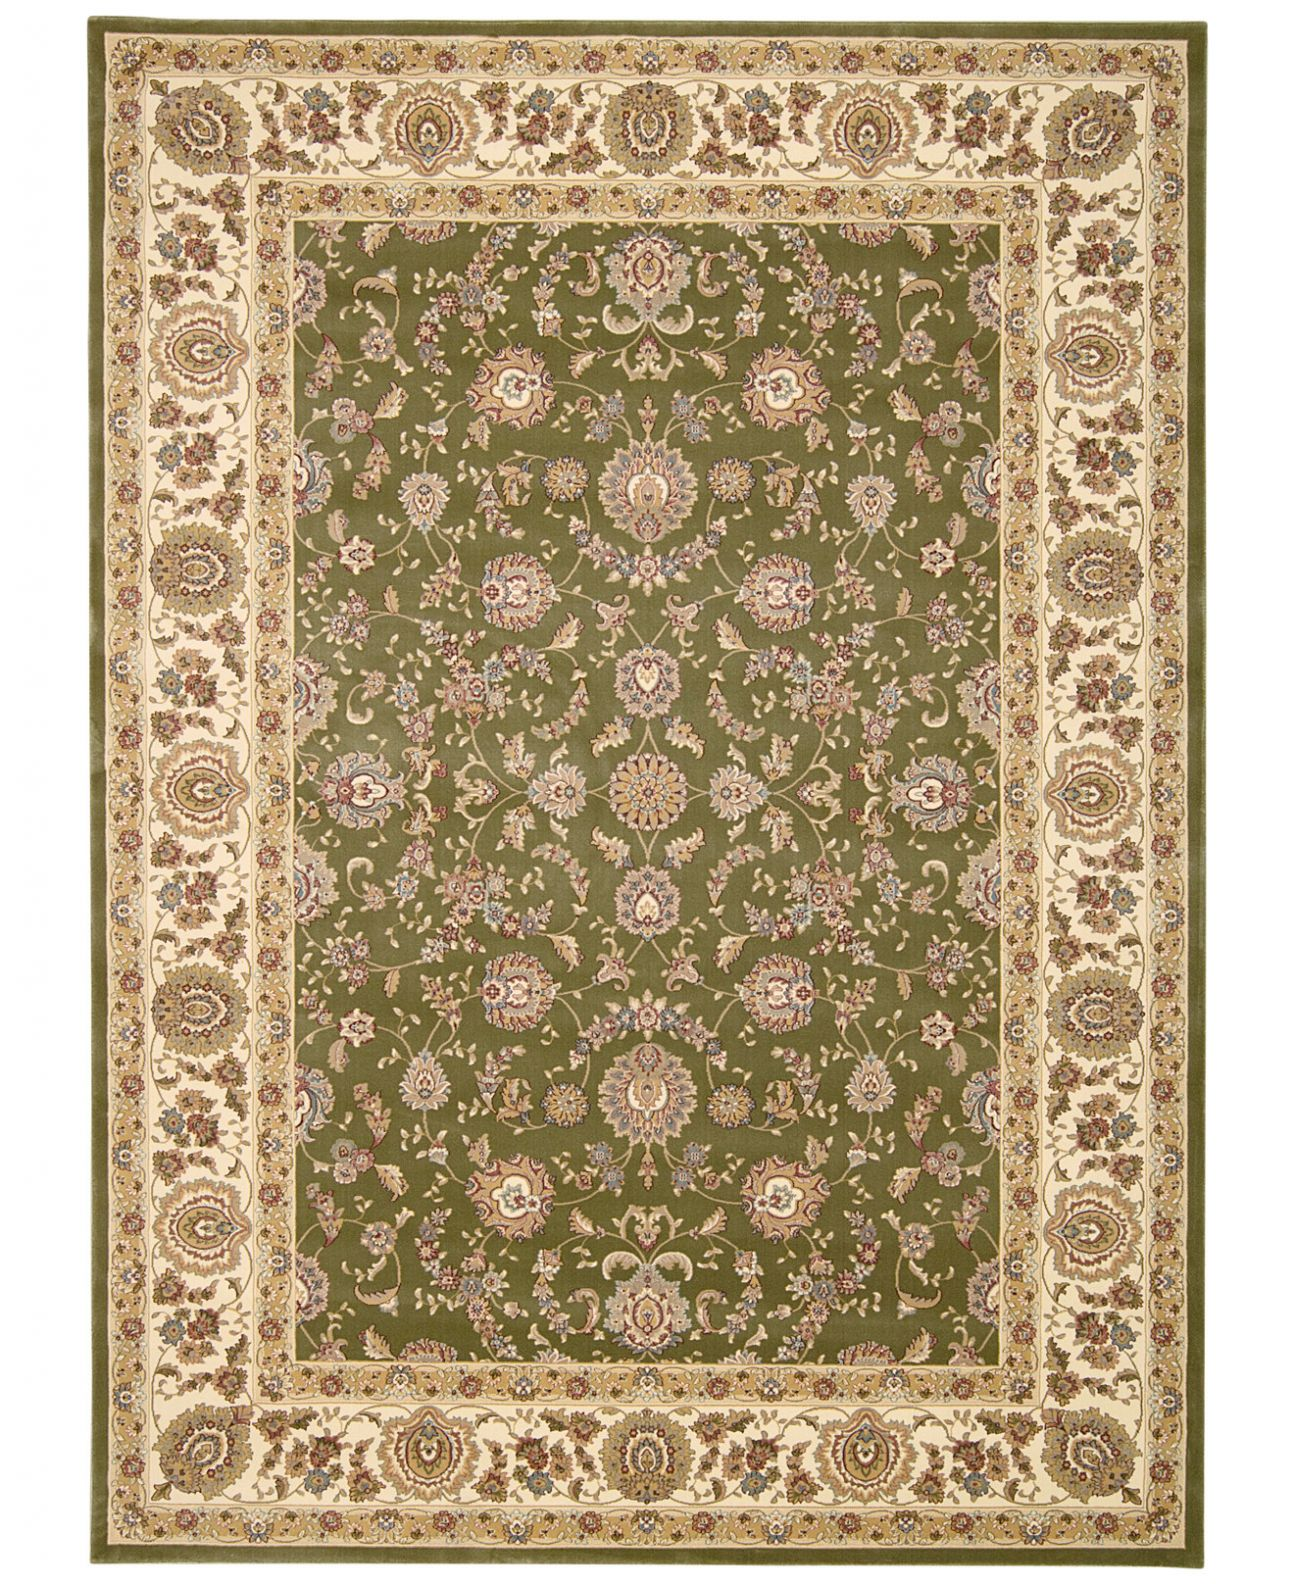 kathy ireland rugs photo 3 of 10 full image for trendy shaw area rugs kathy ireland YJPSLRS